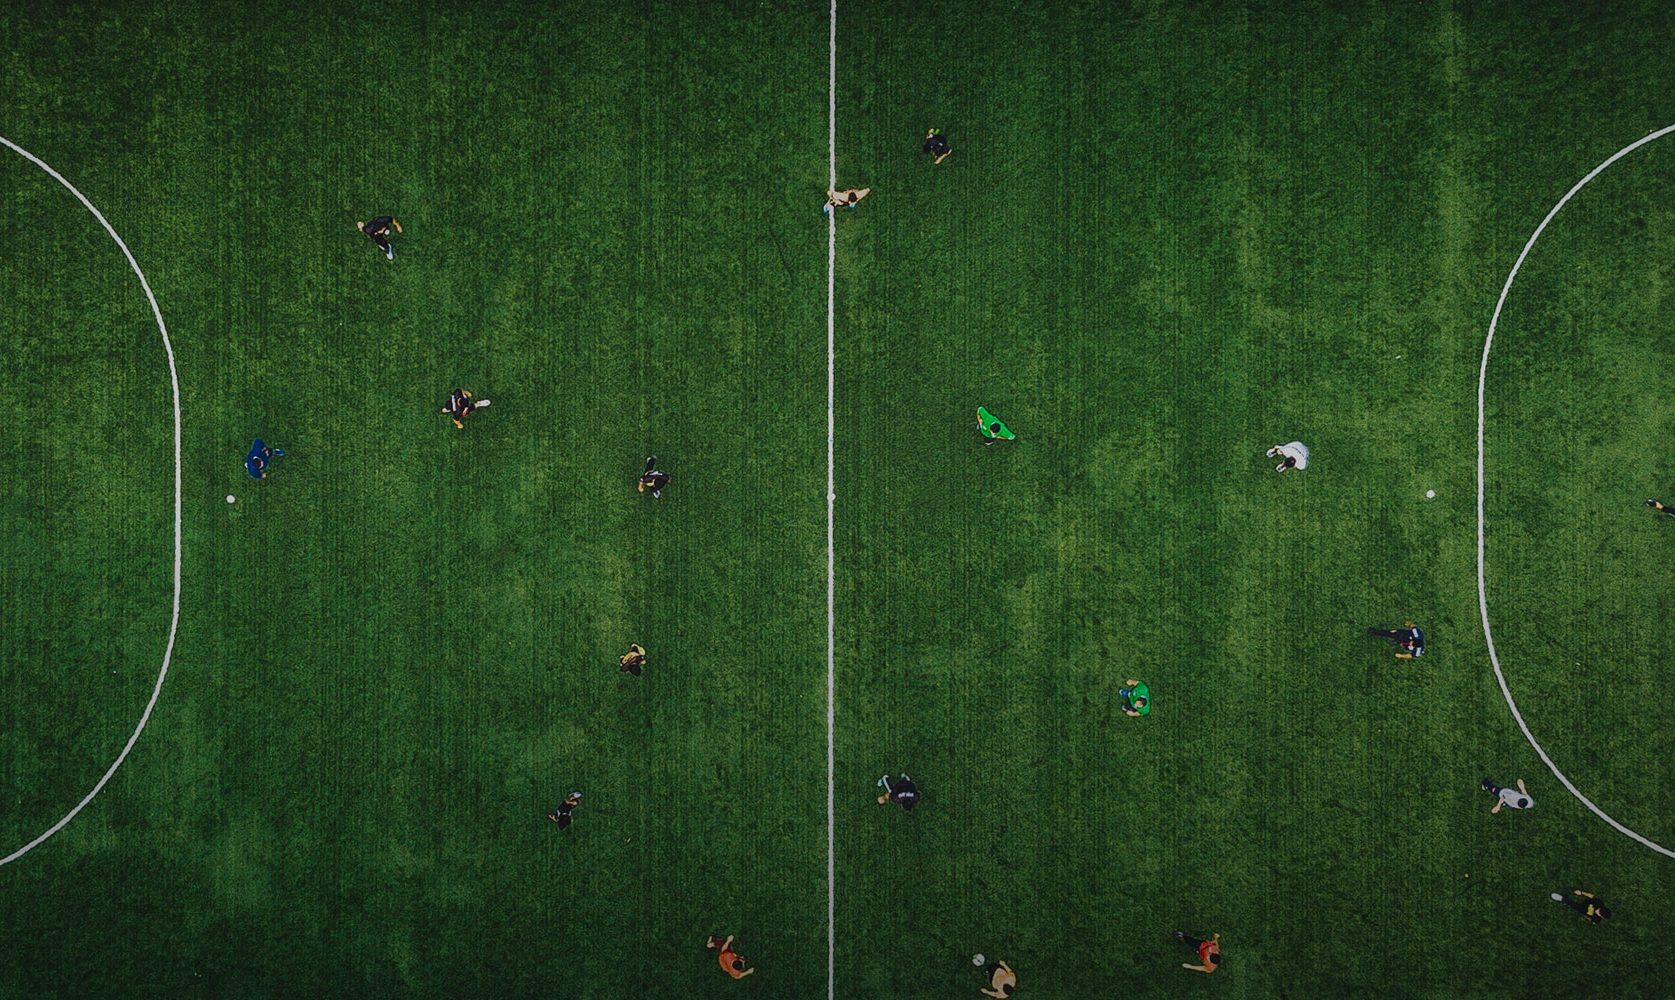 Aerial view soccer field